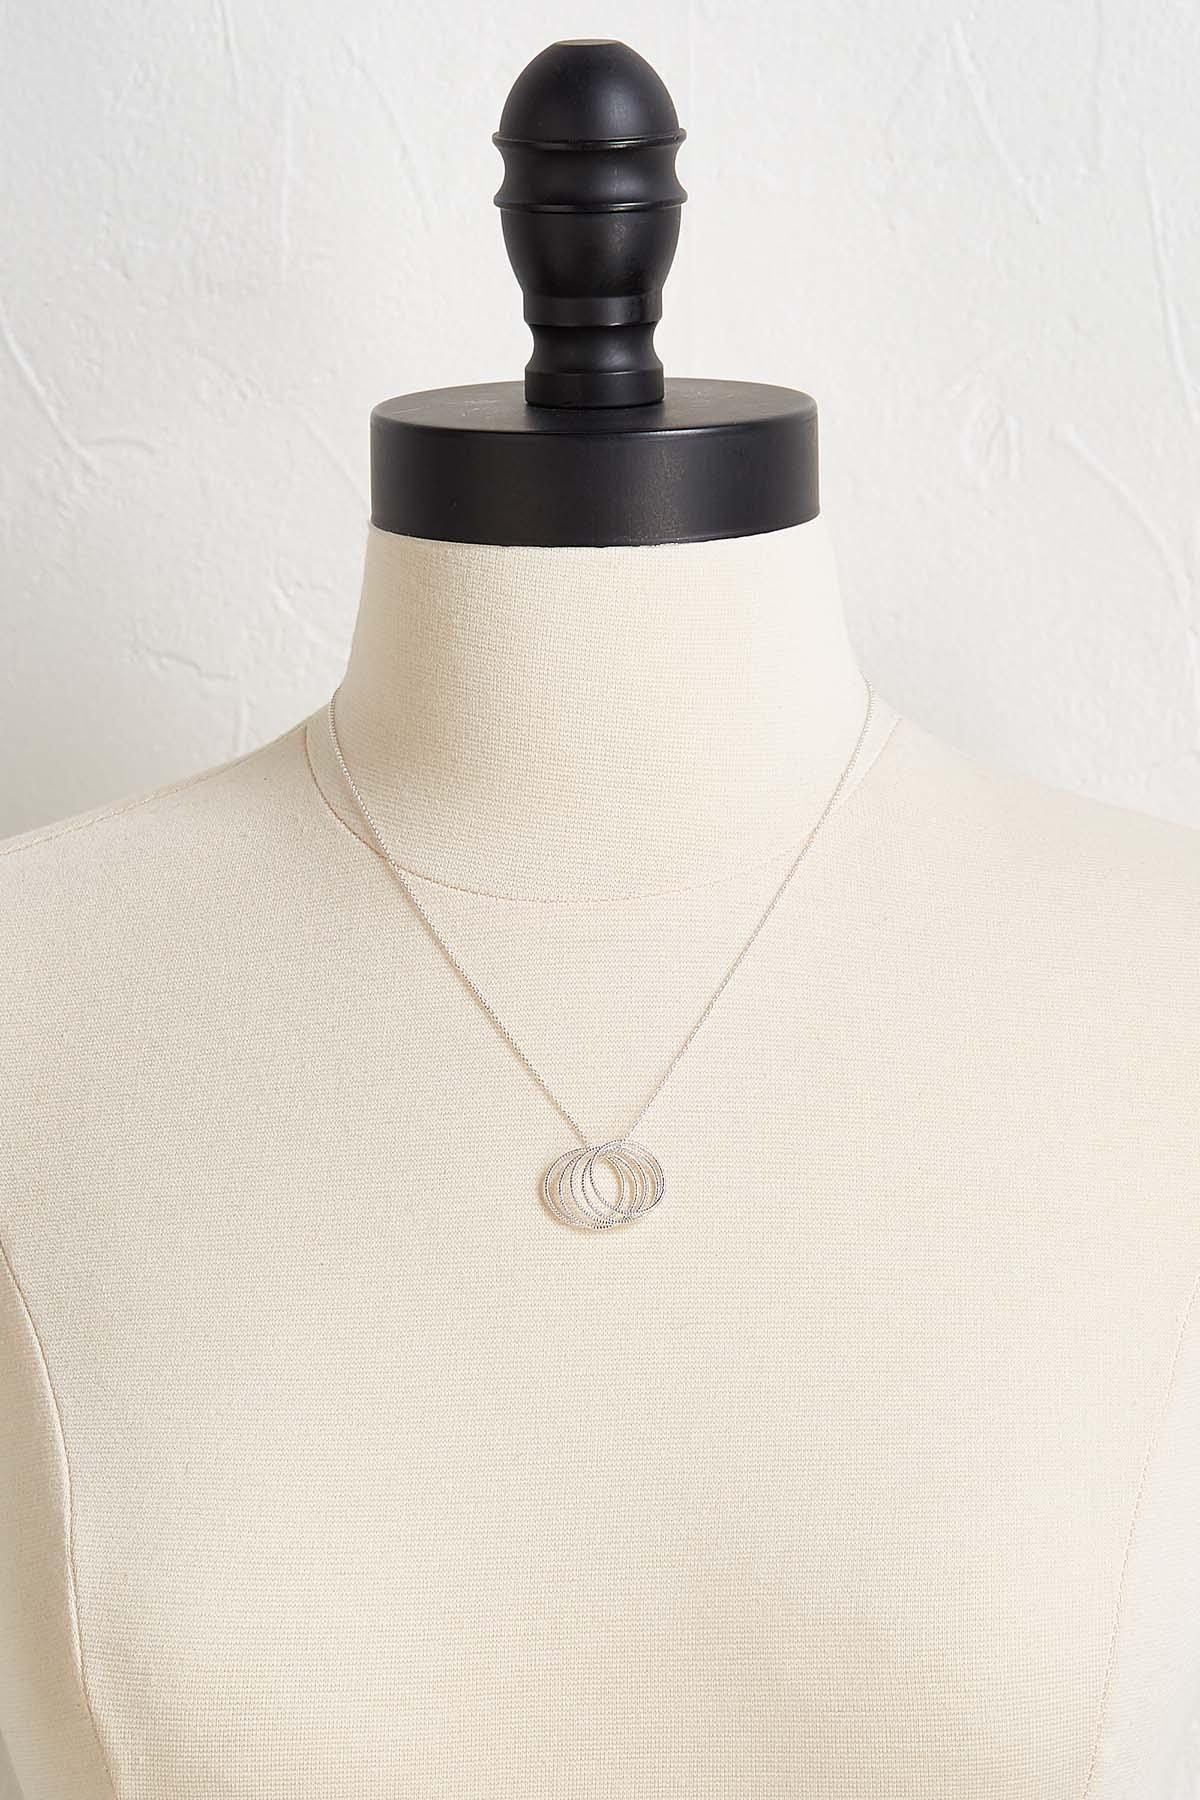 Textured Metal Ring Pendant Necklace